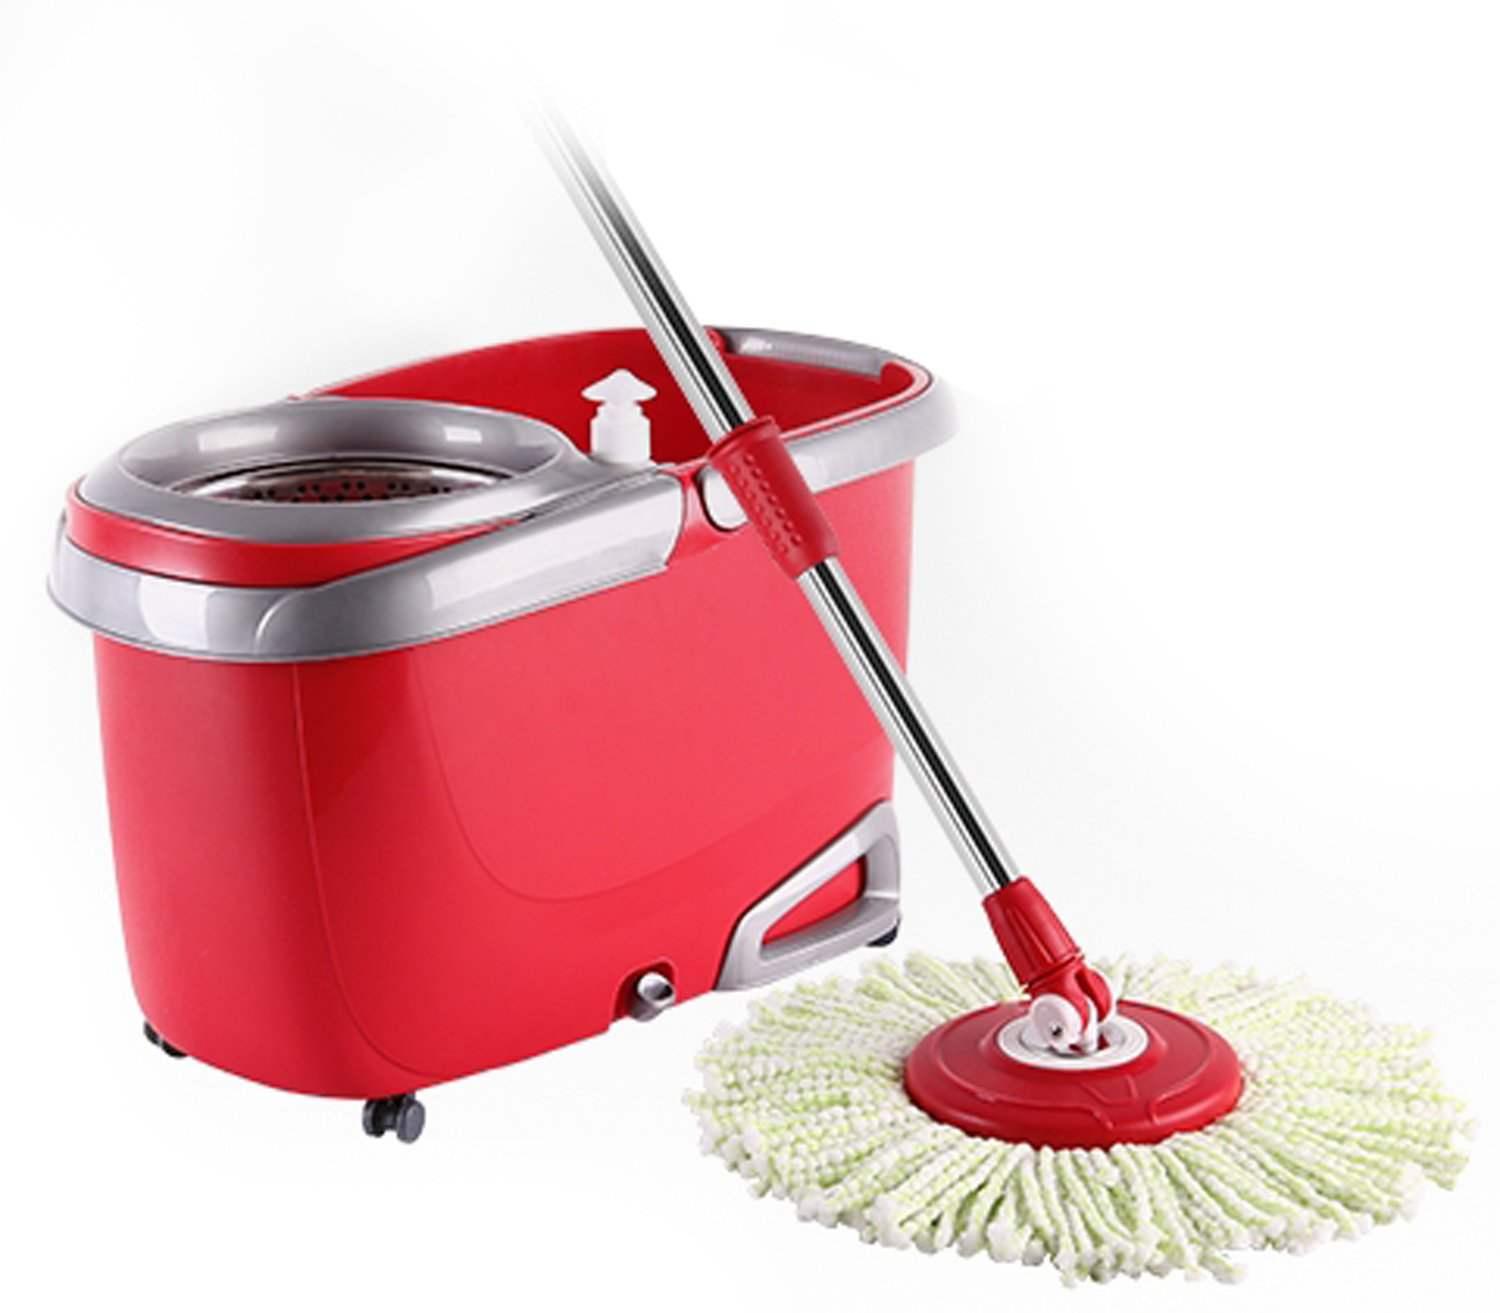 Twist and shout mop review - Amazon Com Arevo Whirlwind Wet Spin Mop And Rolling Bucket For Floor Cleaning Easy Wring System Soap Dispenser Washable Microfiber Cloth Broom And